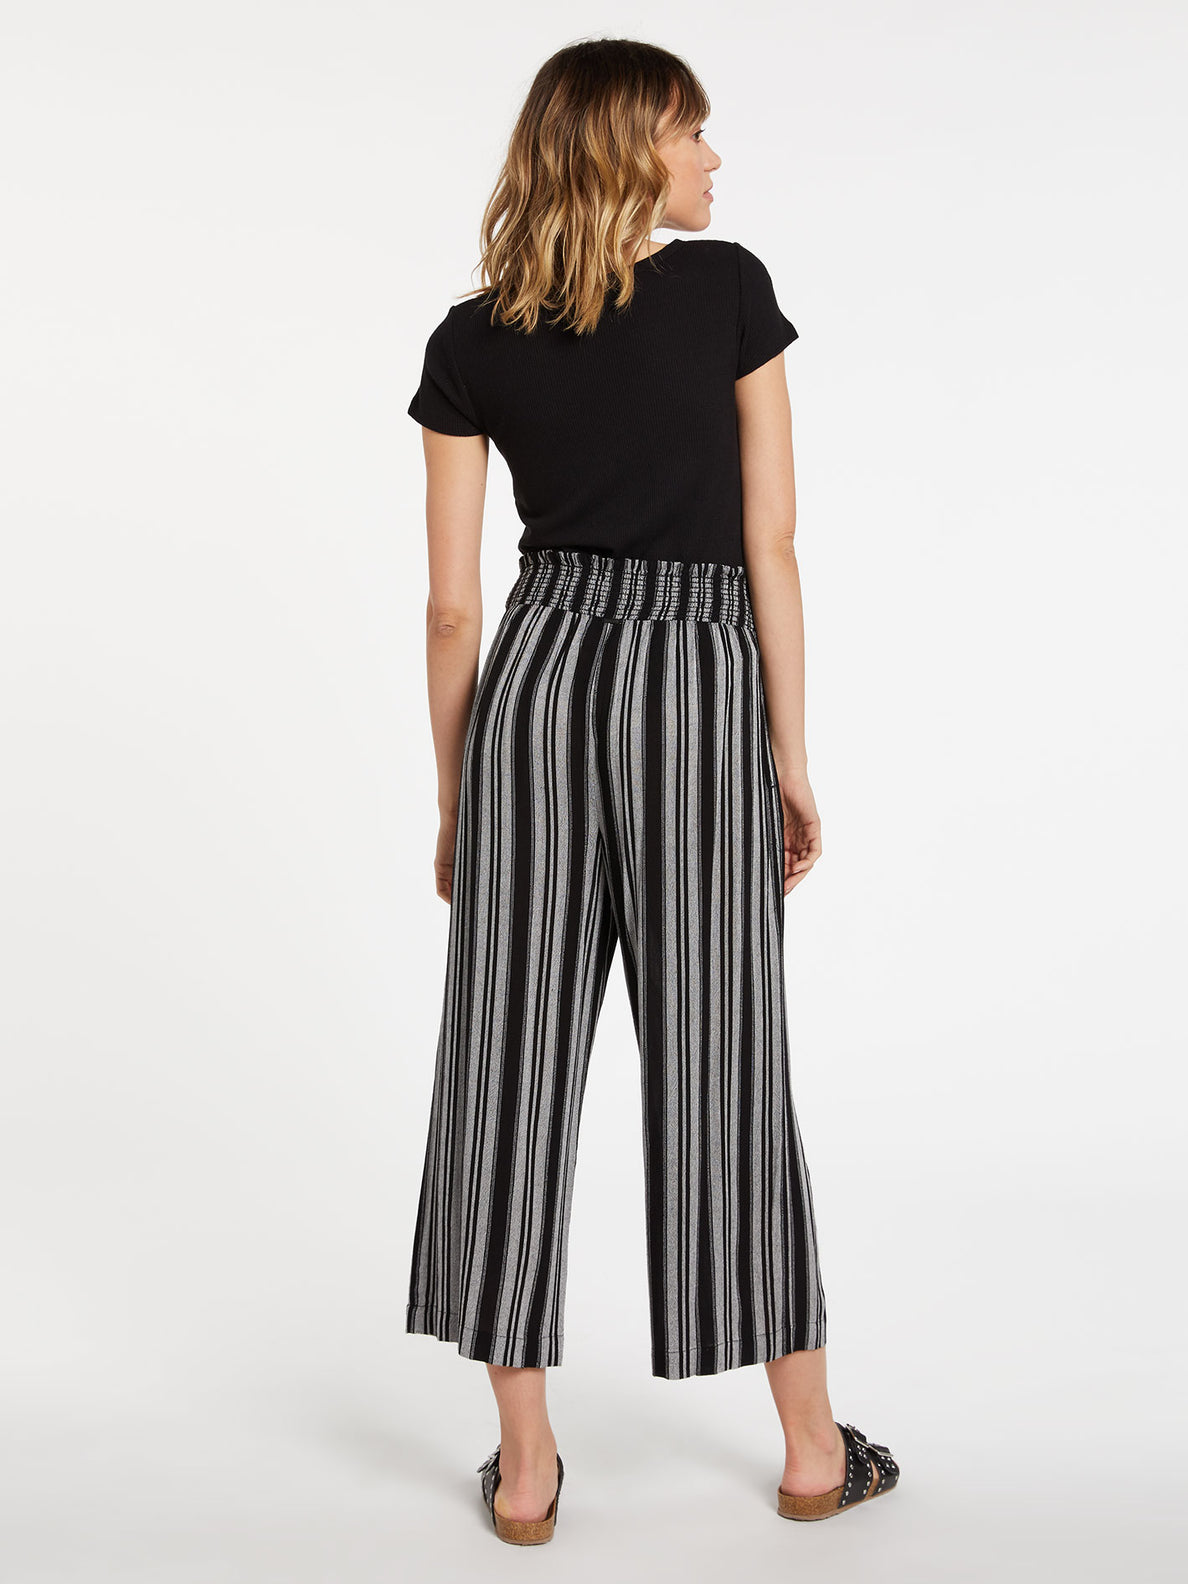 Sunrise Show Pants - Black White (B1232002_BWH) [B]